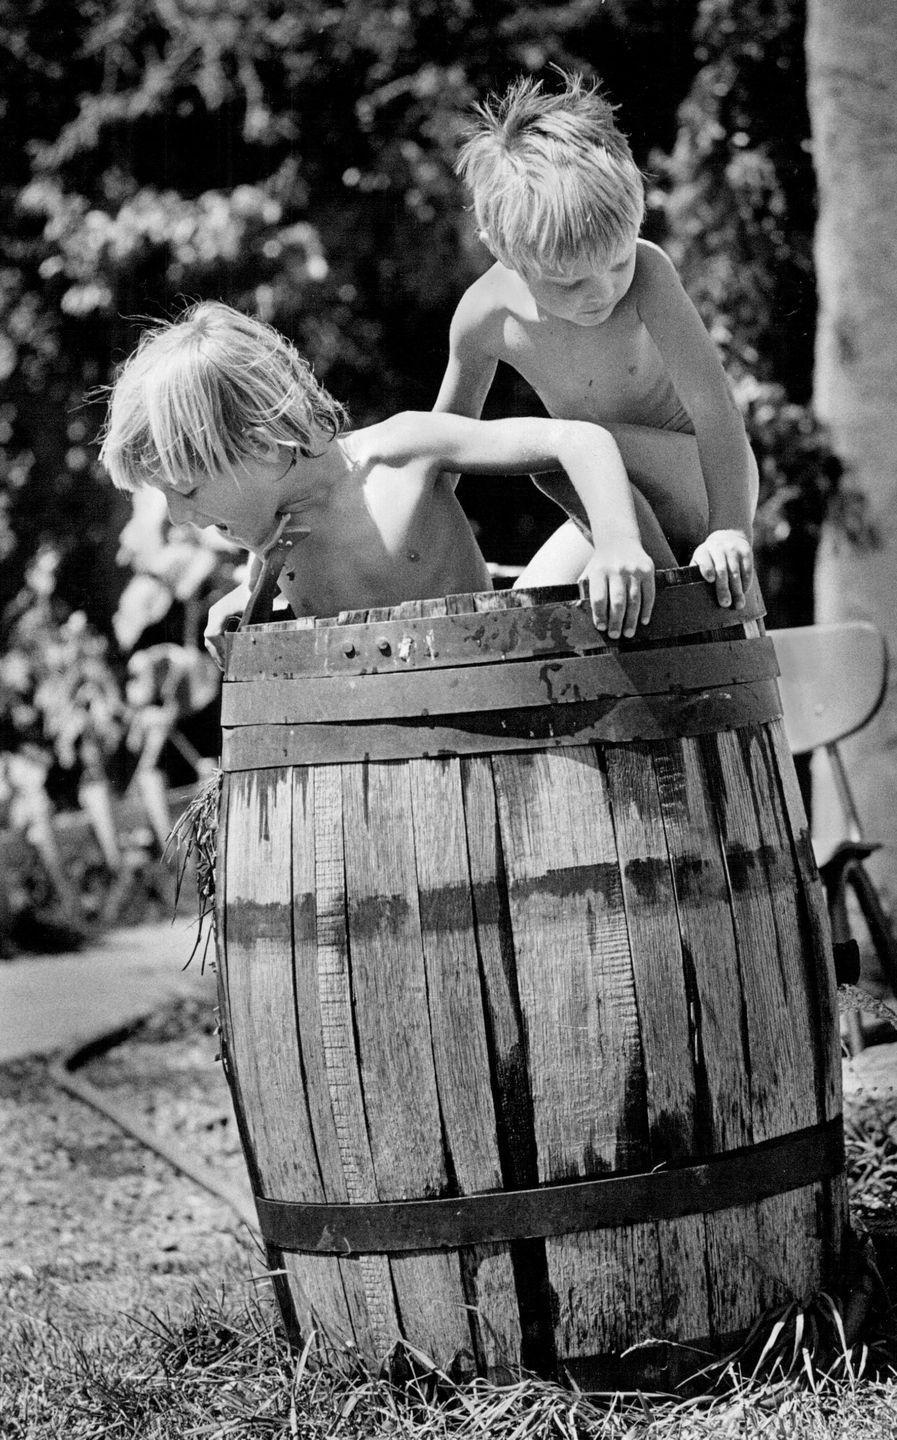 "<p>Long before it was environmentally smart, my grandparents collected rain as it ran off the garage roof into a barrel. <a href=""http://cceonondaga.org/resources/how-to-build-a-rain-barrel"" rel=""nofollow noopener"" target=""_blank"" data-ylk=""slk:Make"" class=""link rapid-noclick-resp"">Make</a> or buy your own to collect free water for your garden.</p>"